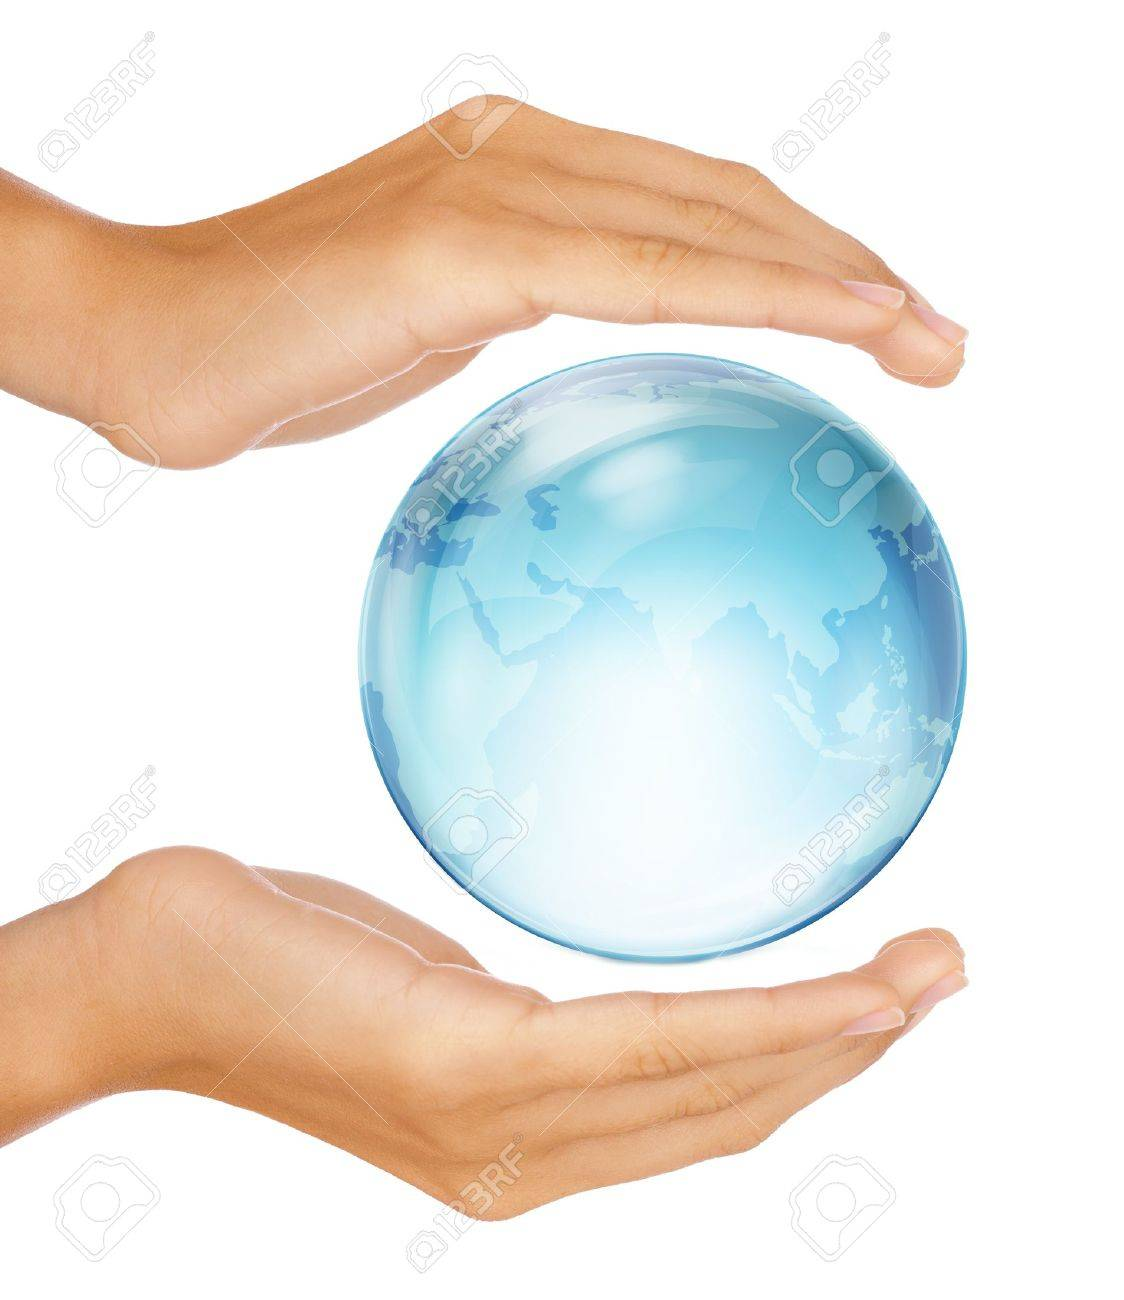 Saving the earth concept: Human hands surrounding the globe isolated on white background Stock Photo - 10101182